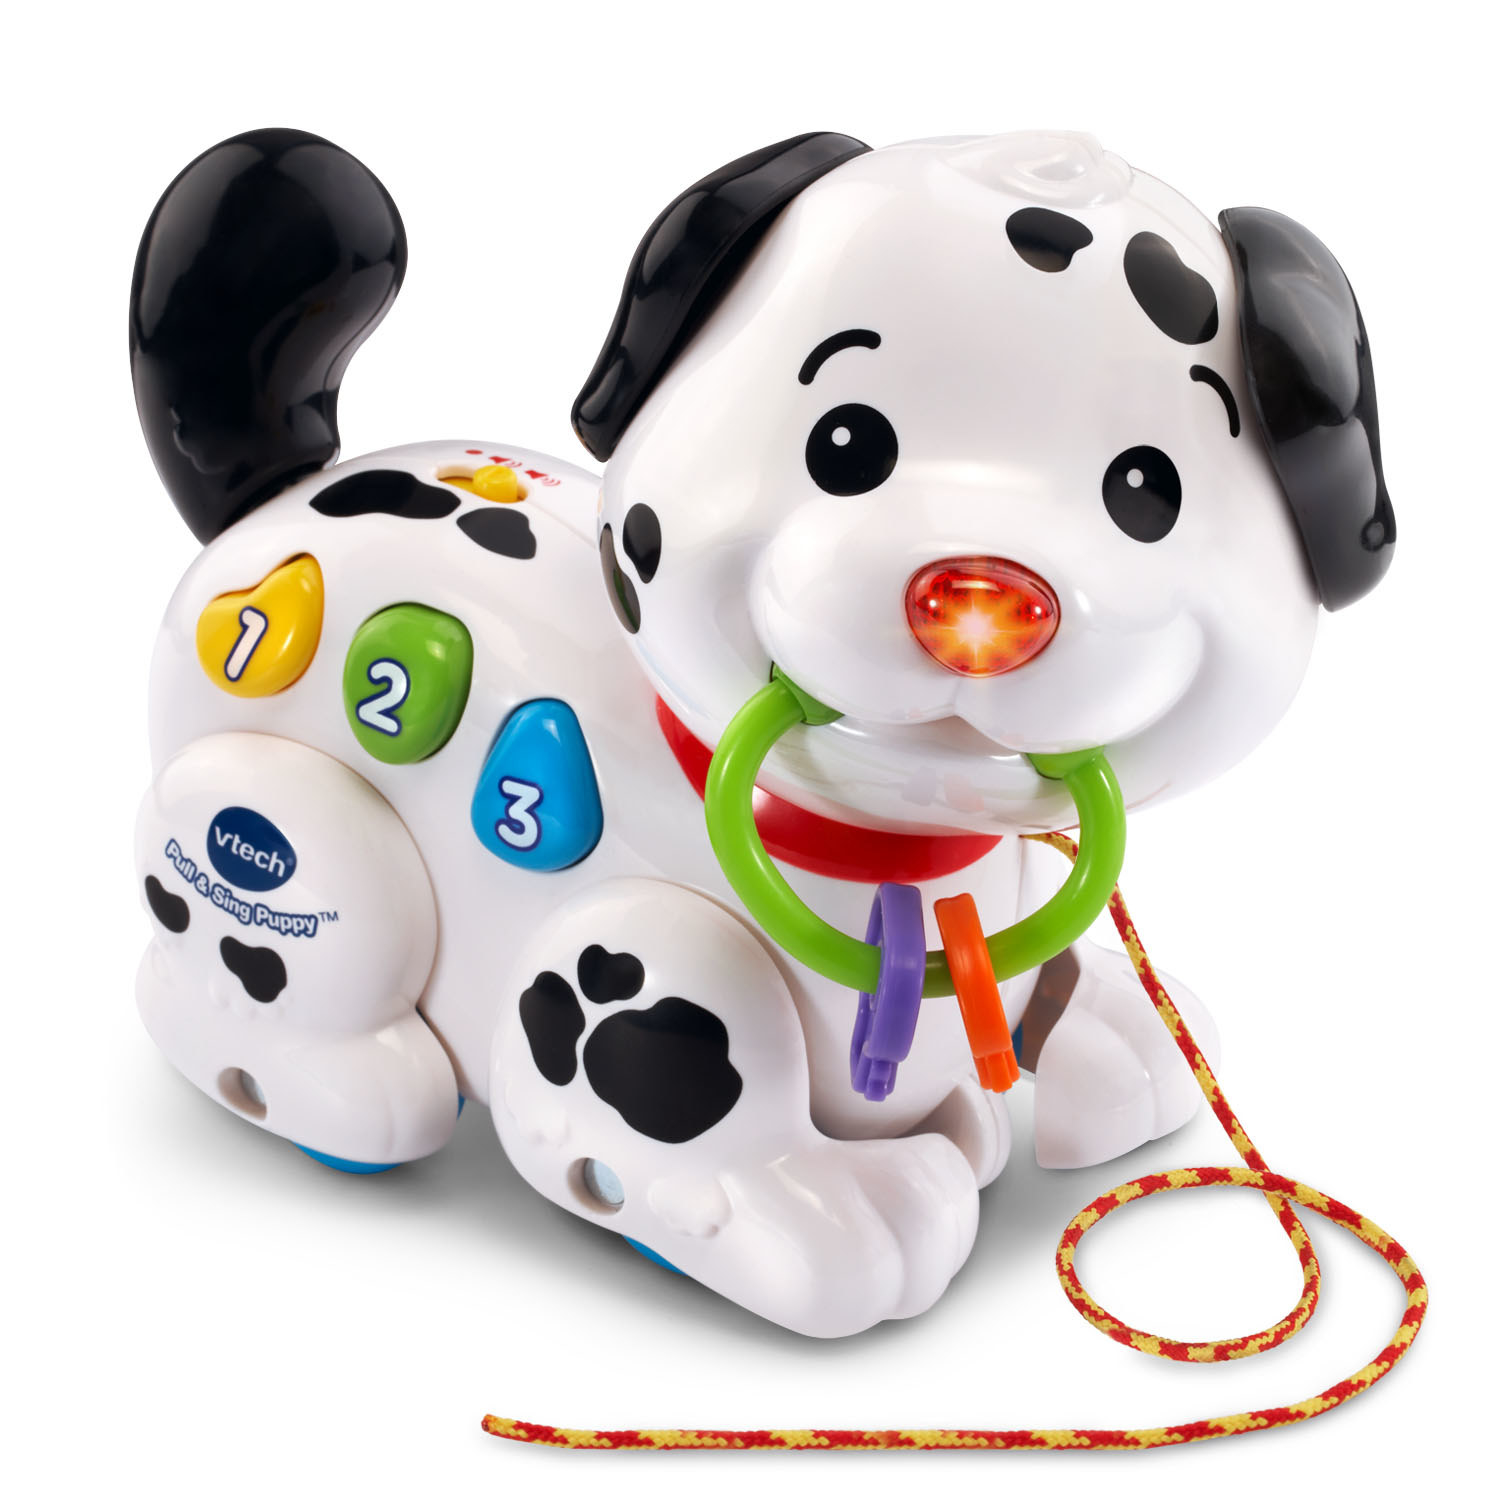 Plastic puppy with leash and interactive buttons